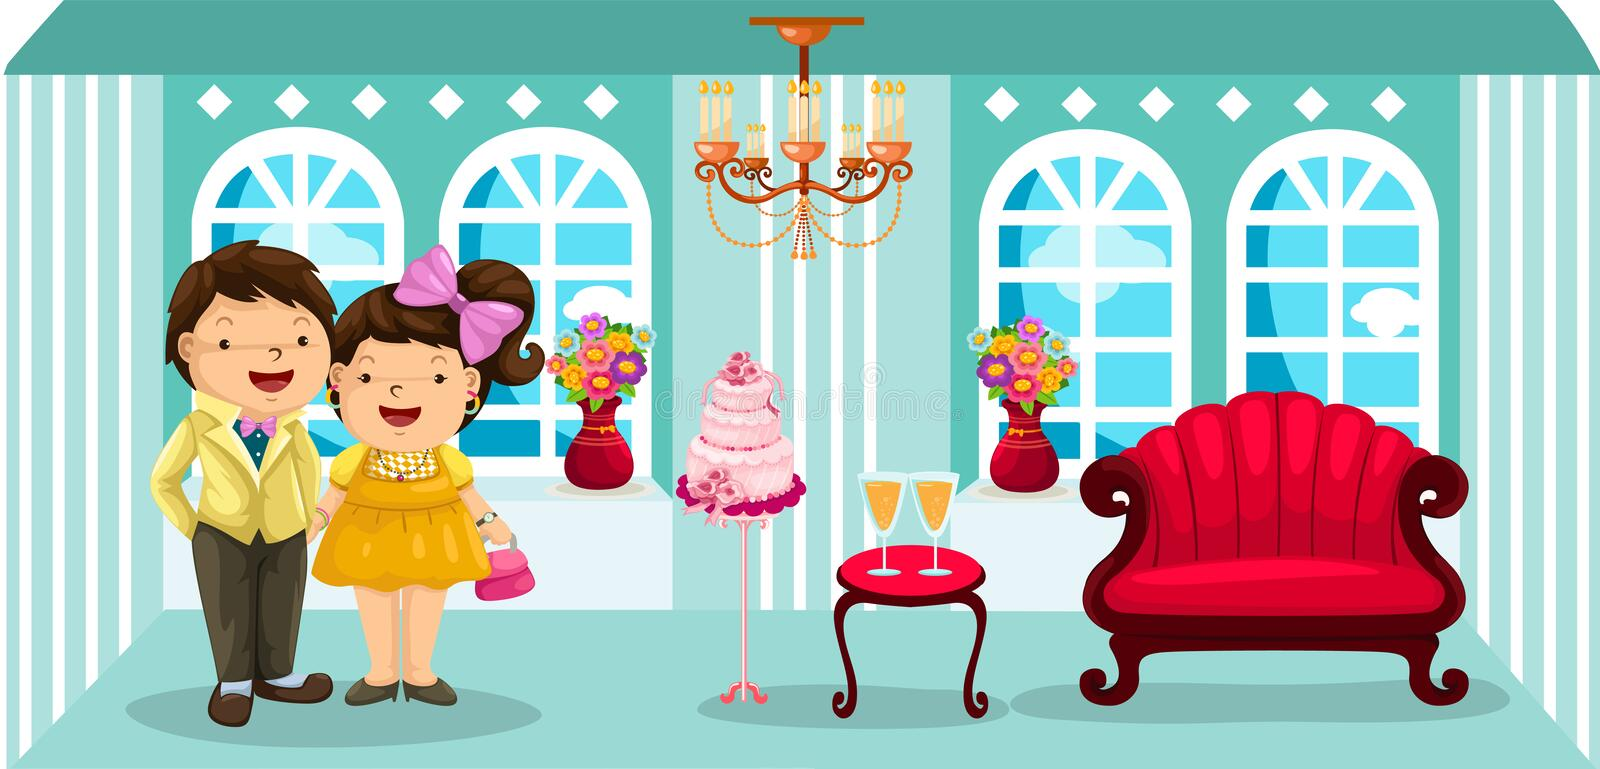 Cute couple in party room. Illustration of cute couple in party room vector illustration